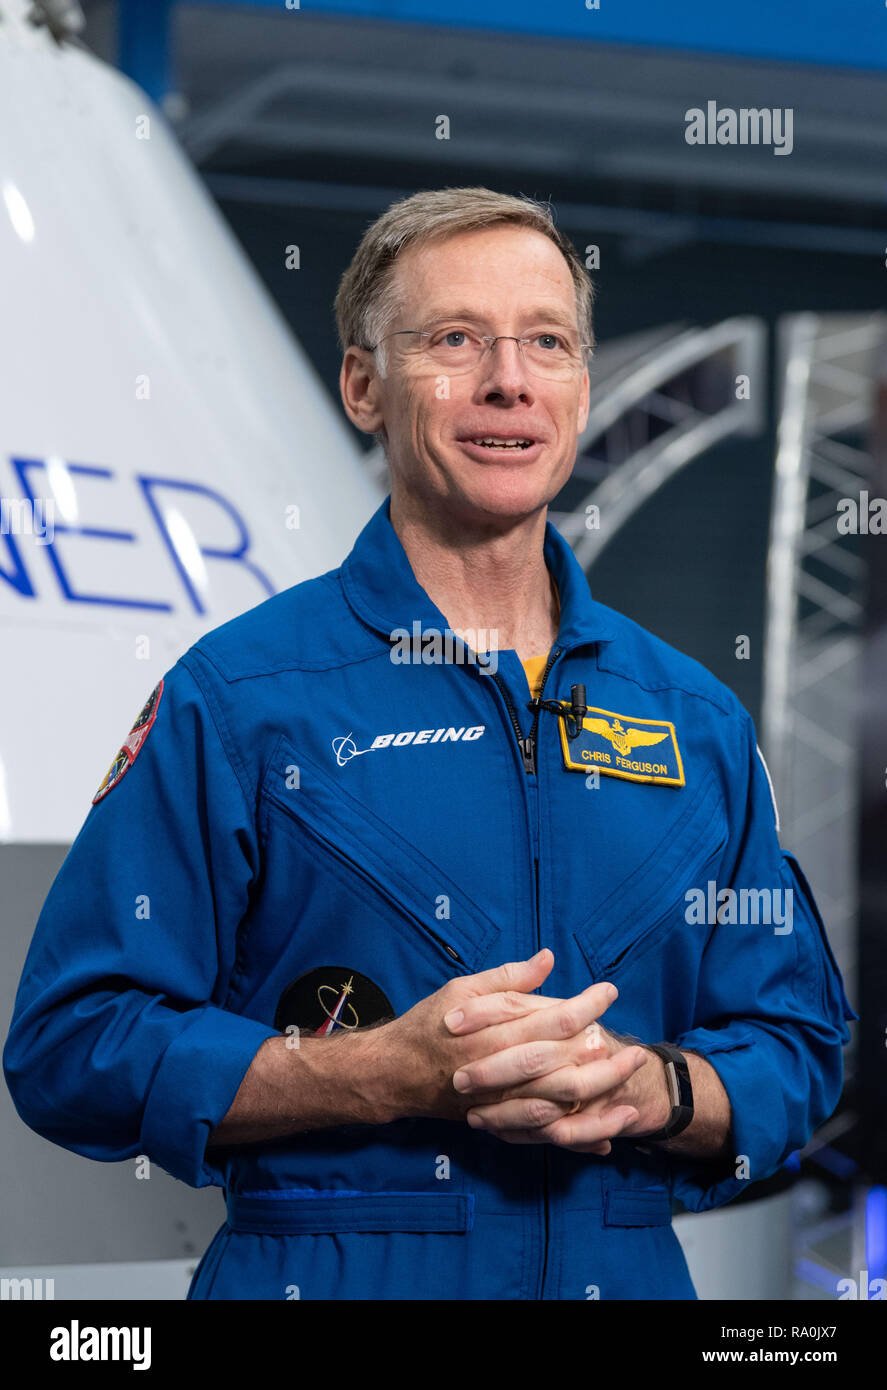 NASA Boeing commercial crew astronaut Chris Ferguson during the announcement of astronauts selected for the Boeing and SpaceX commercial crews at the Johnson Space Center August 3, 2018 in Houston, Texas. - Stock Image